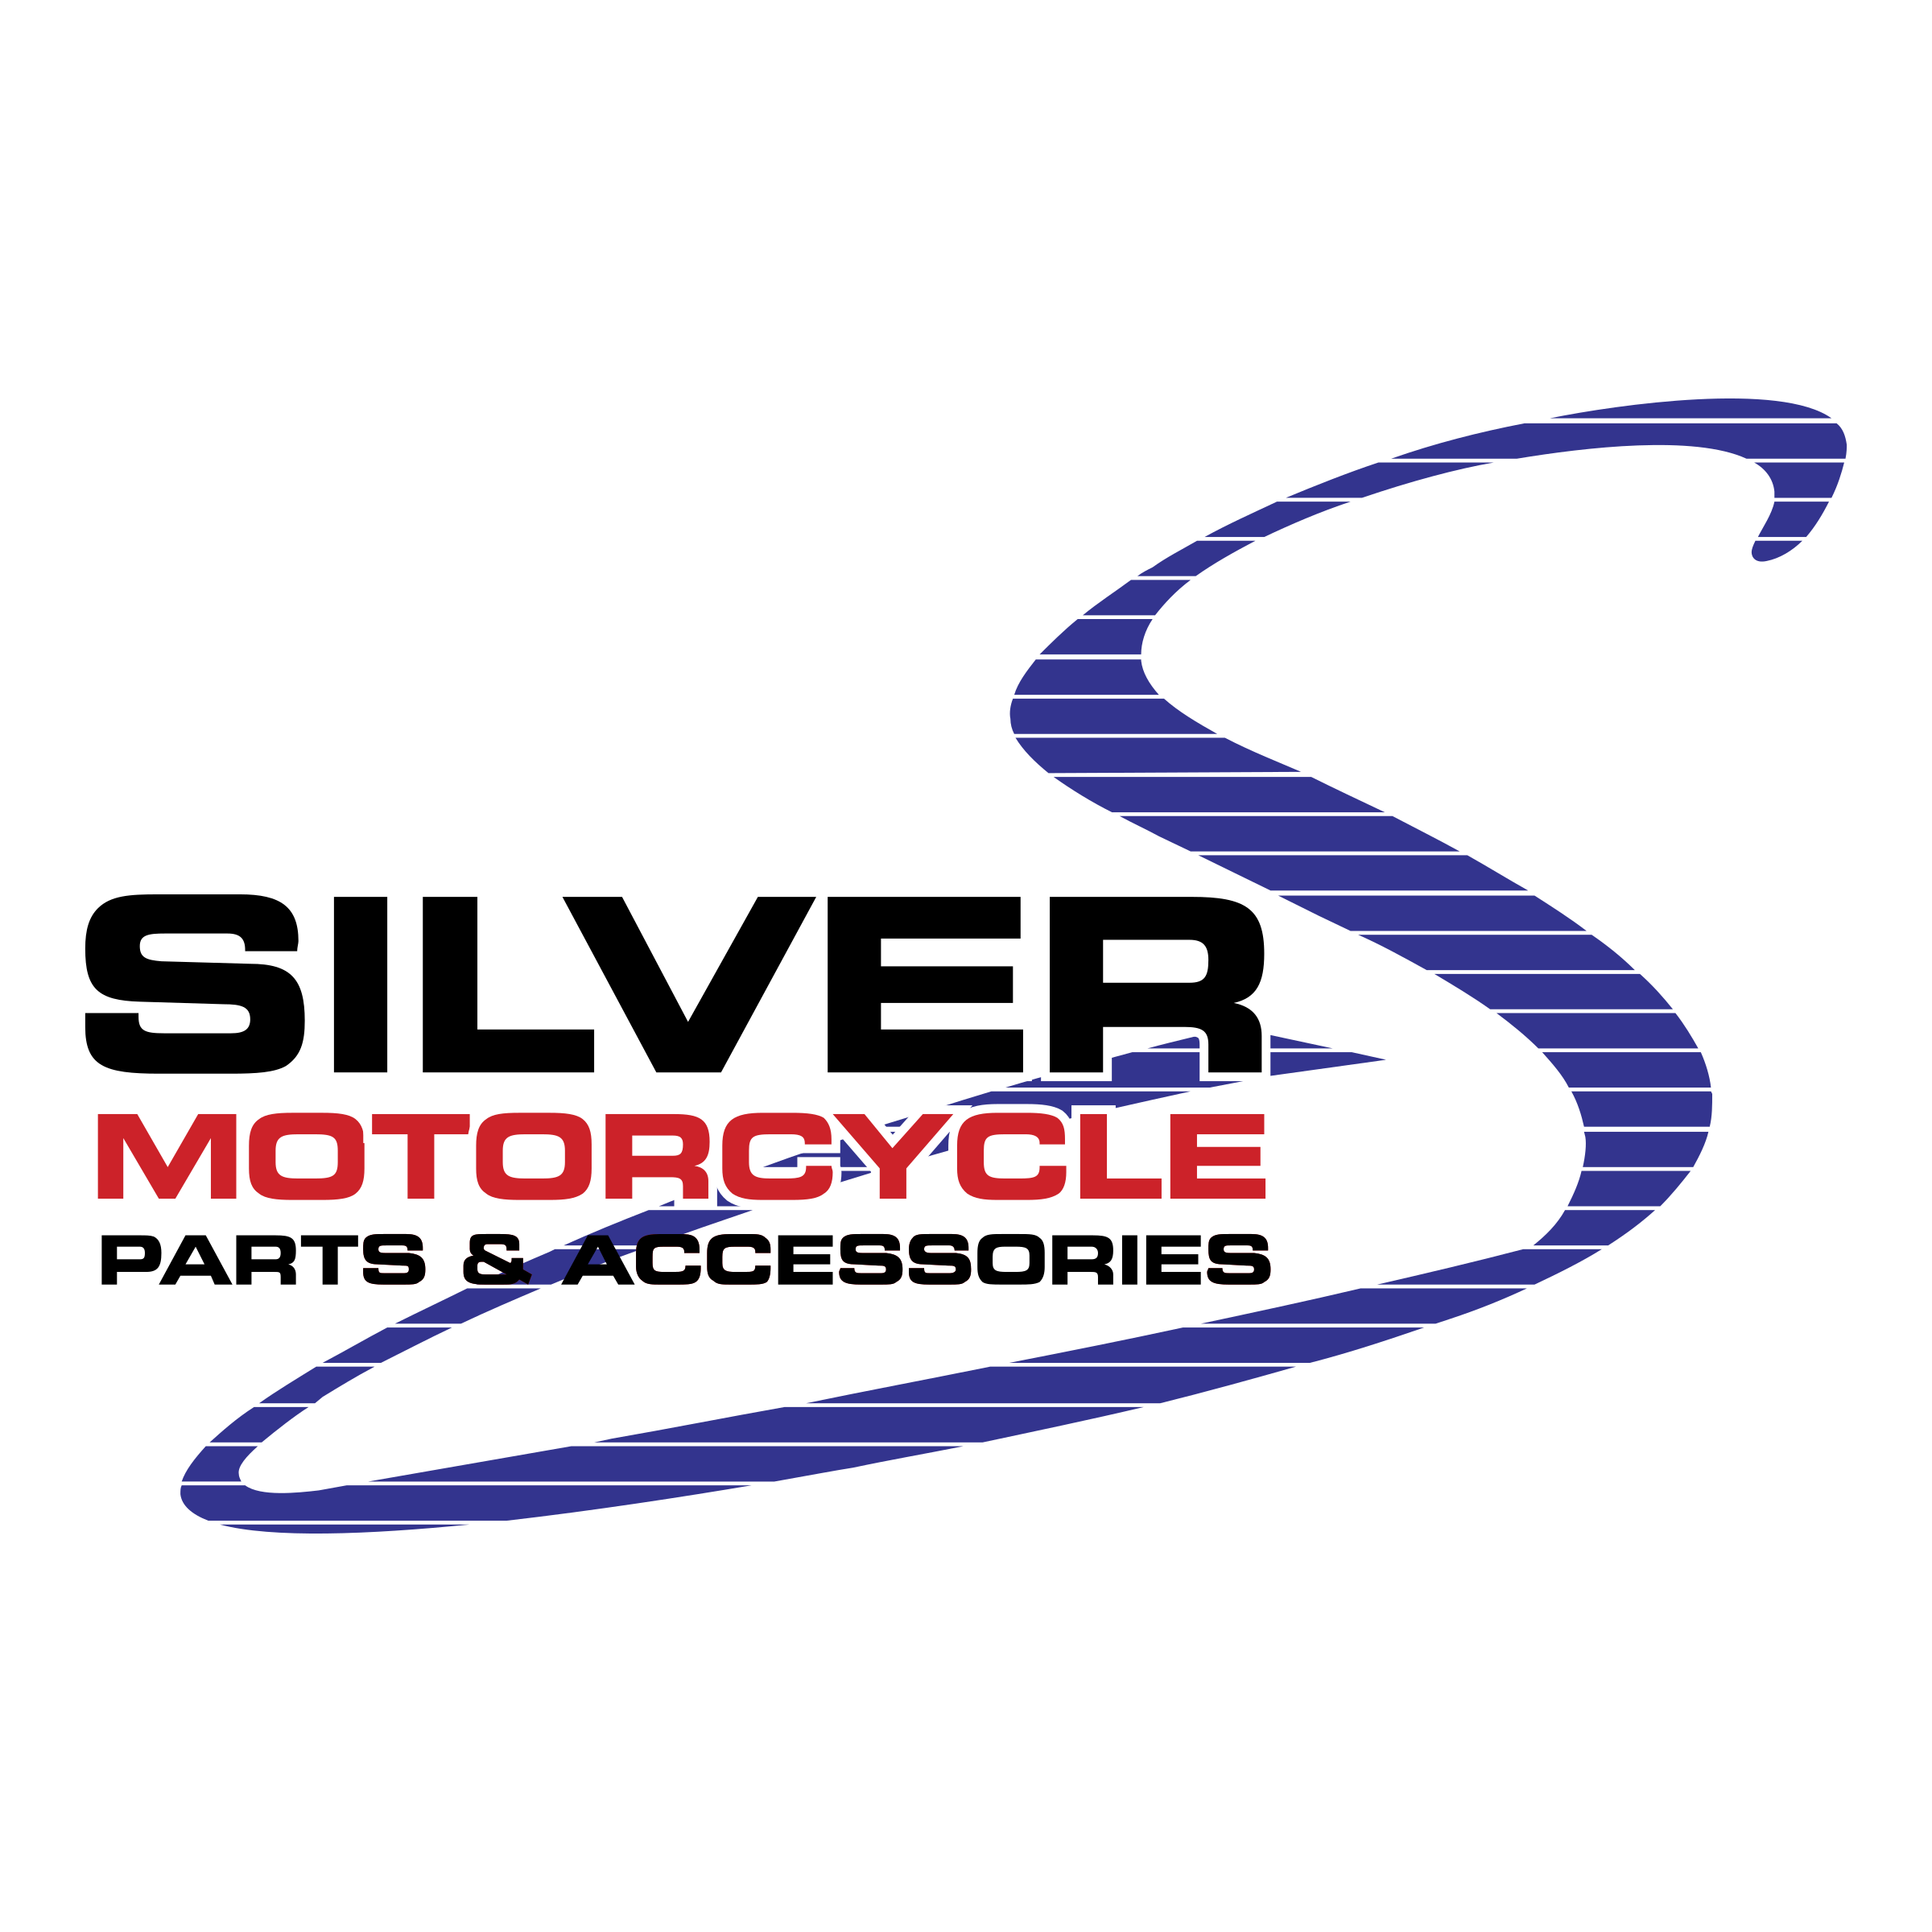 Silver Motorcycle Logo Png Transparent Svg Vector Freebie Supply